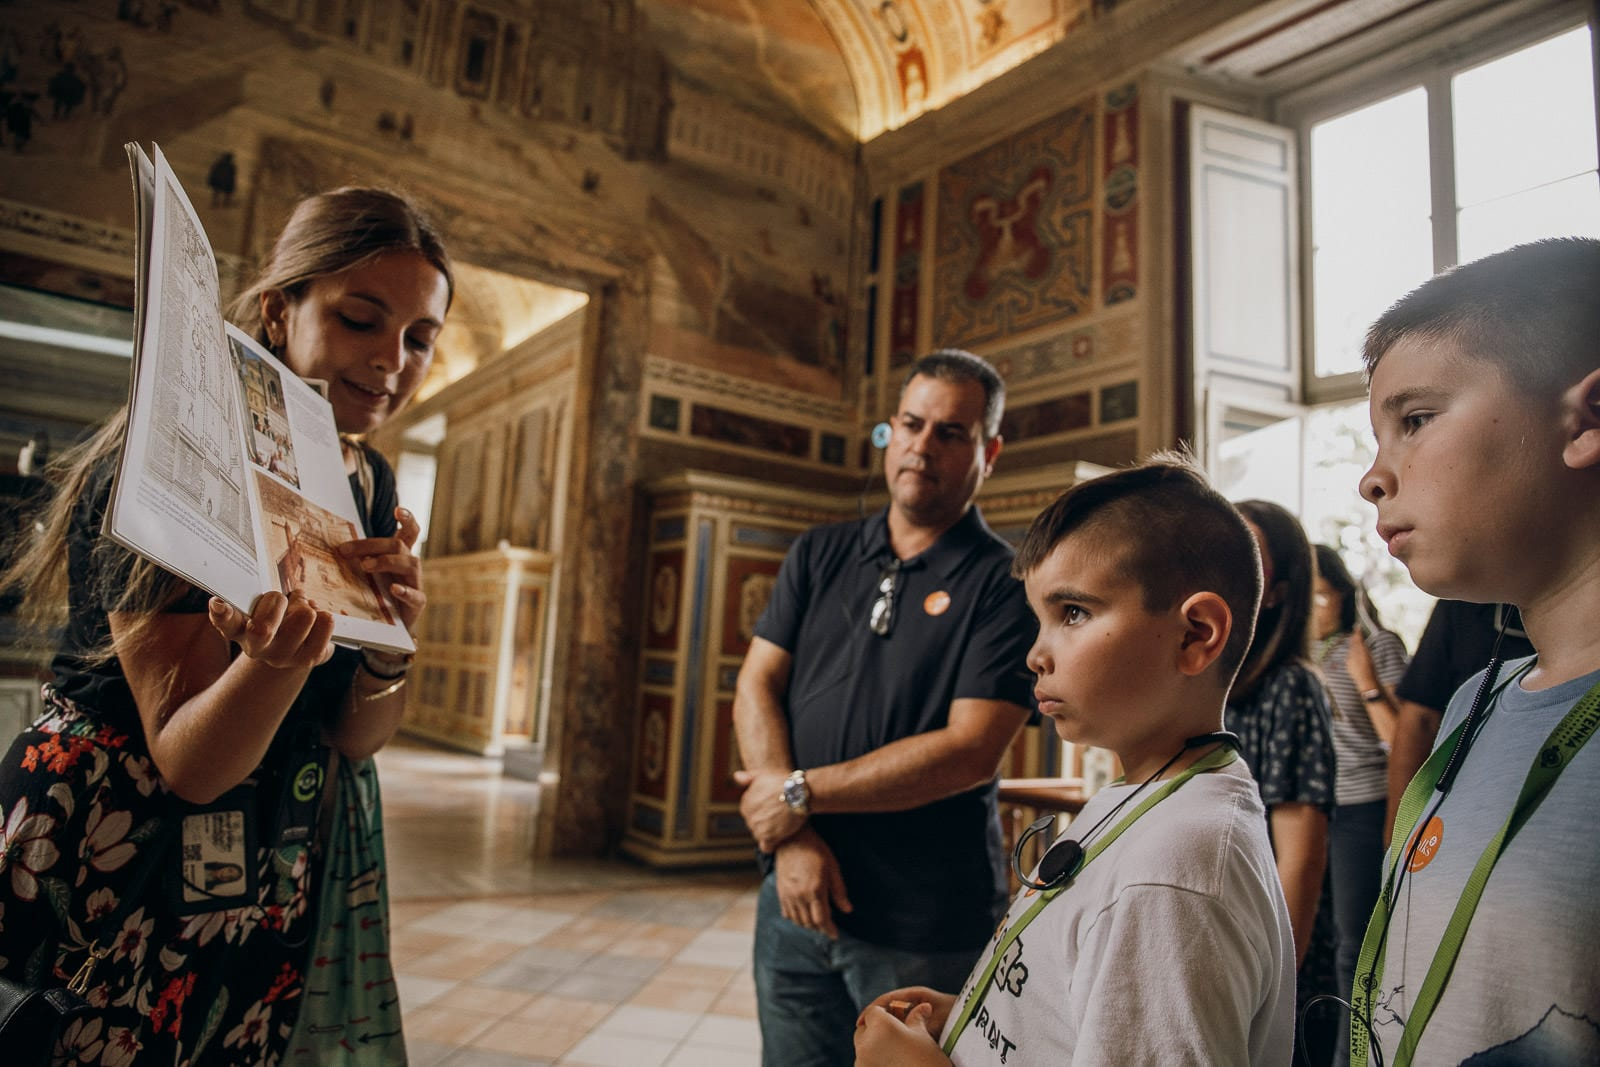 Visiting the Vatican Museums with kids